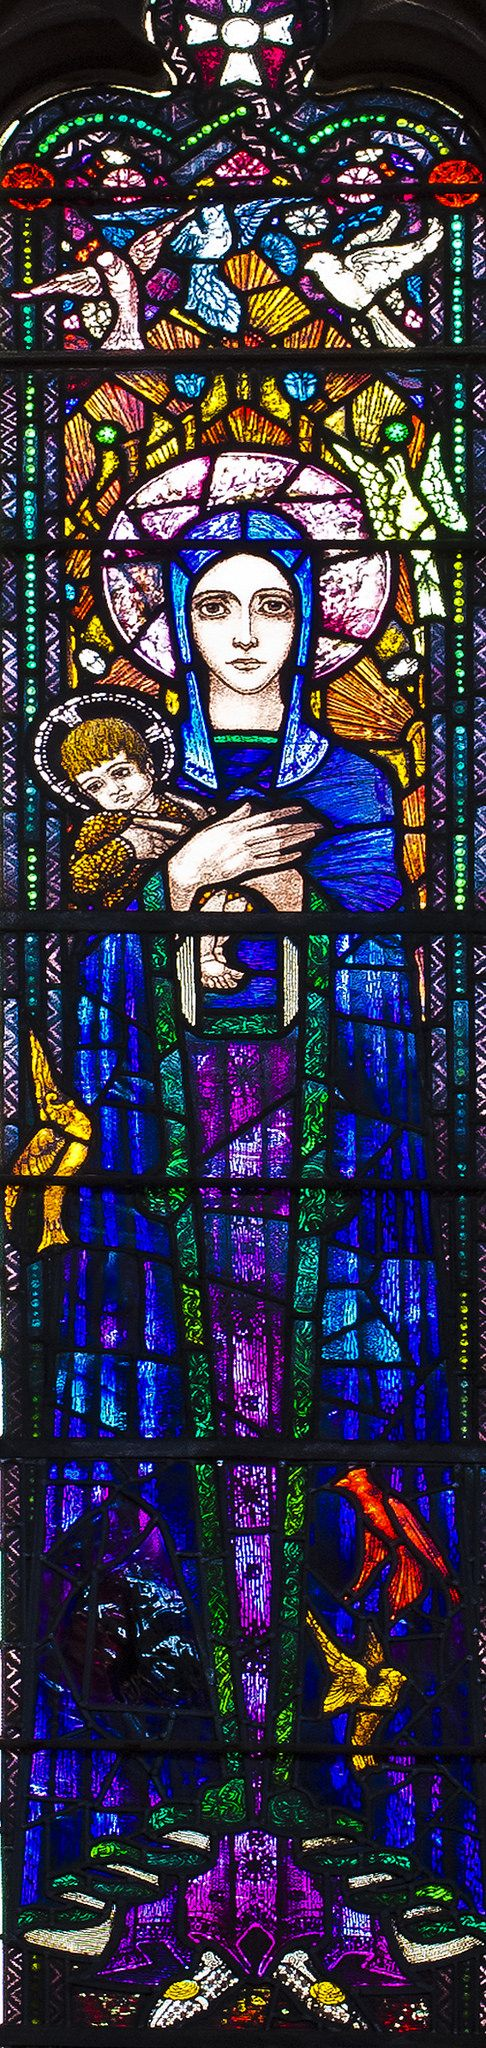 https://flic.kr/p/DpfEwk | NANTWICH, St Mary.   Harry Clarke. | One of very few windows in England designed by Harry Clarke.   This dates from 1919 and represents the Virgin & Child with St Cecilia on the left and Richard Coeur de Lion on the right, and is in memory of Mildred Clare Knowles who died in 1913 (and loved music, hence St Cecilia) and of her son, Richard Knowles who was killed in action in 1918.  Detail: Virgin & Child.